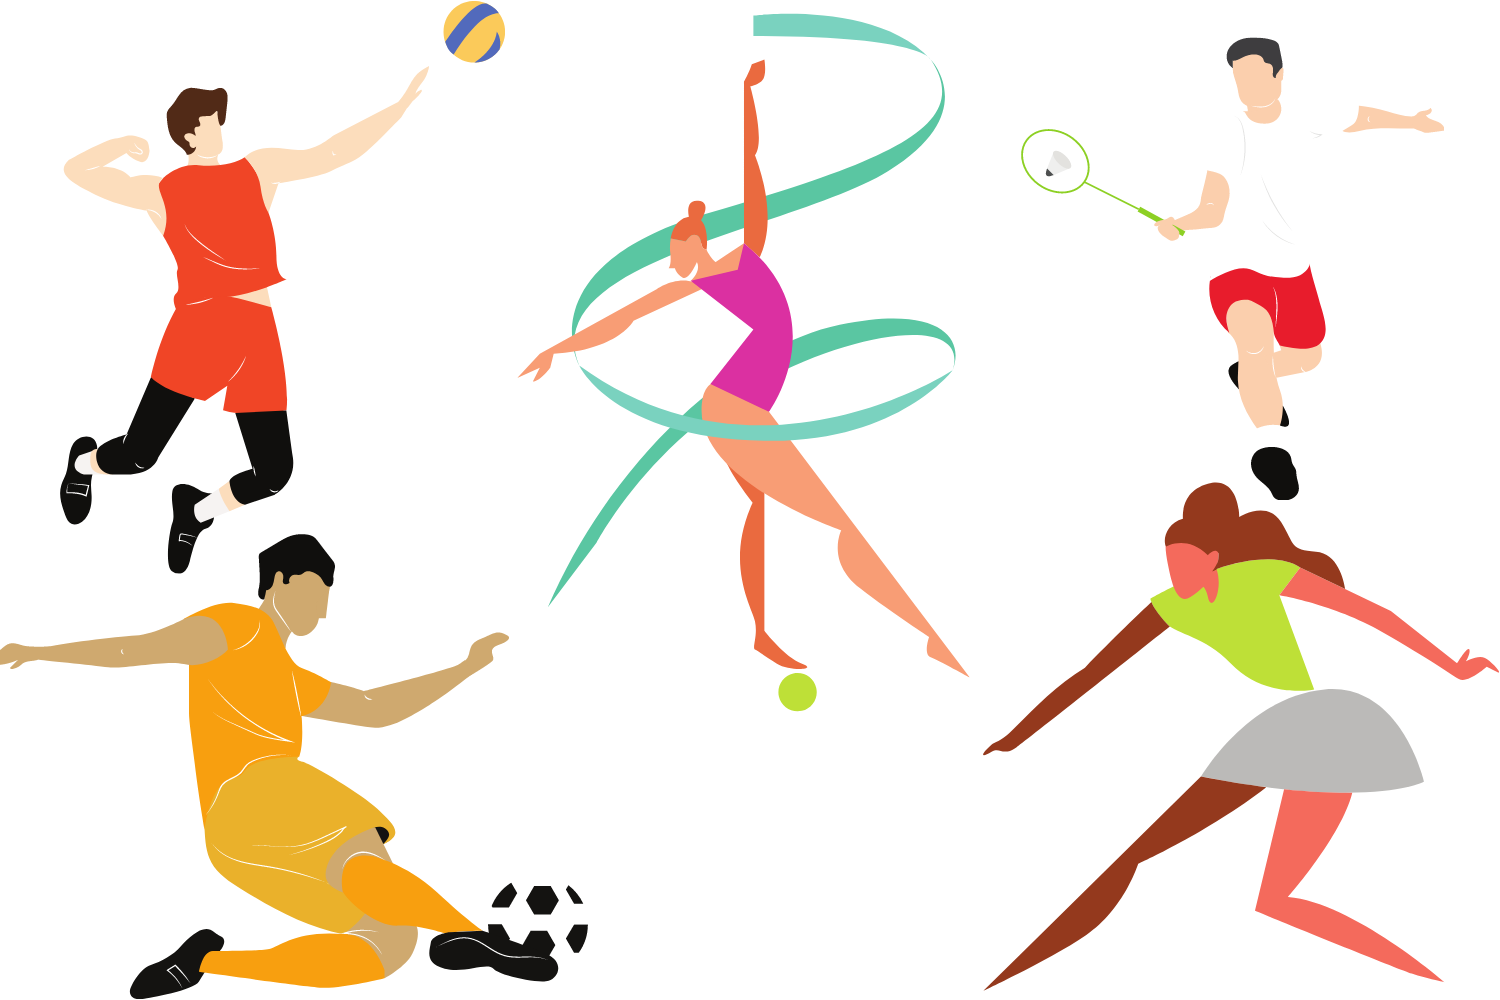 Different athletes performing sports